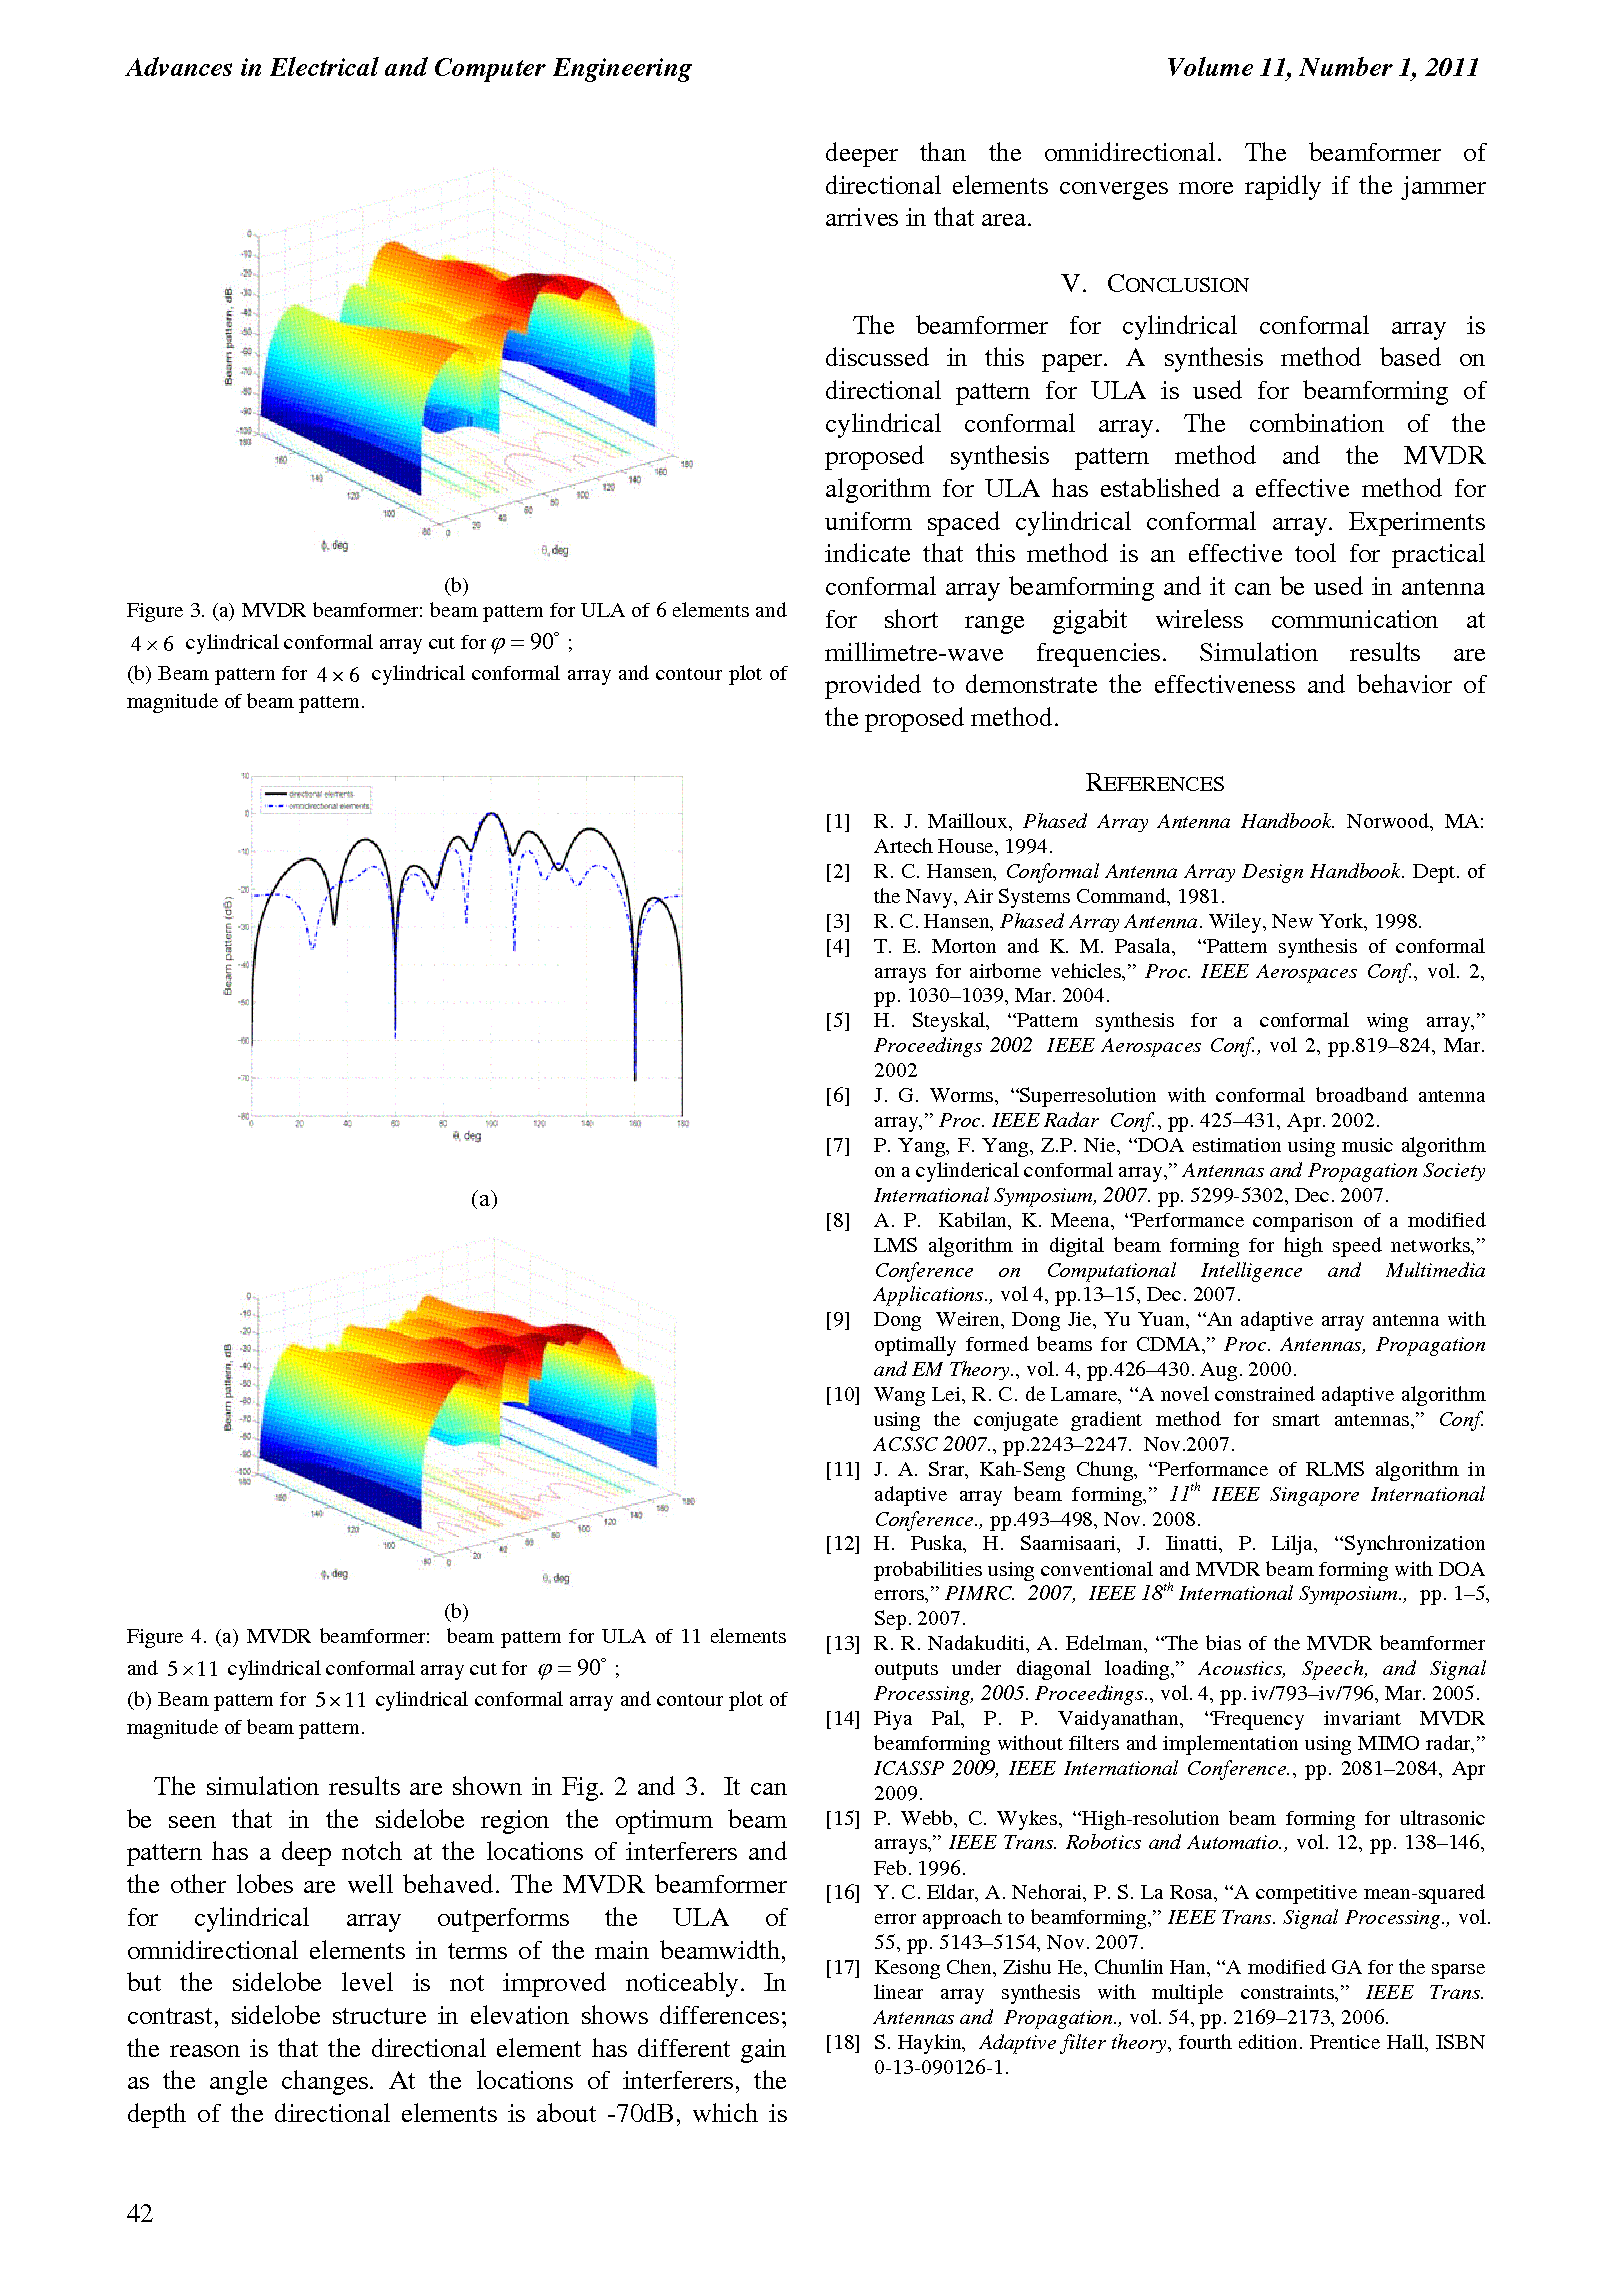 PDF Quickview for paper with DOI:10.4316/AECE.2011.01006